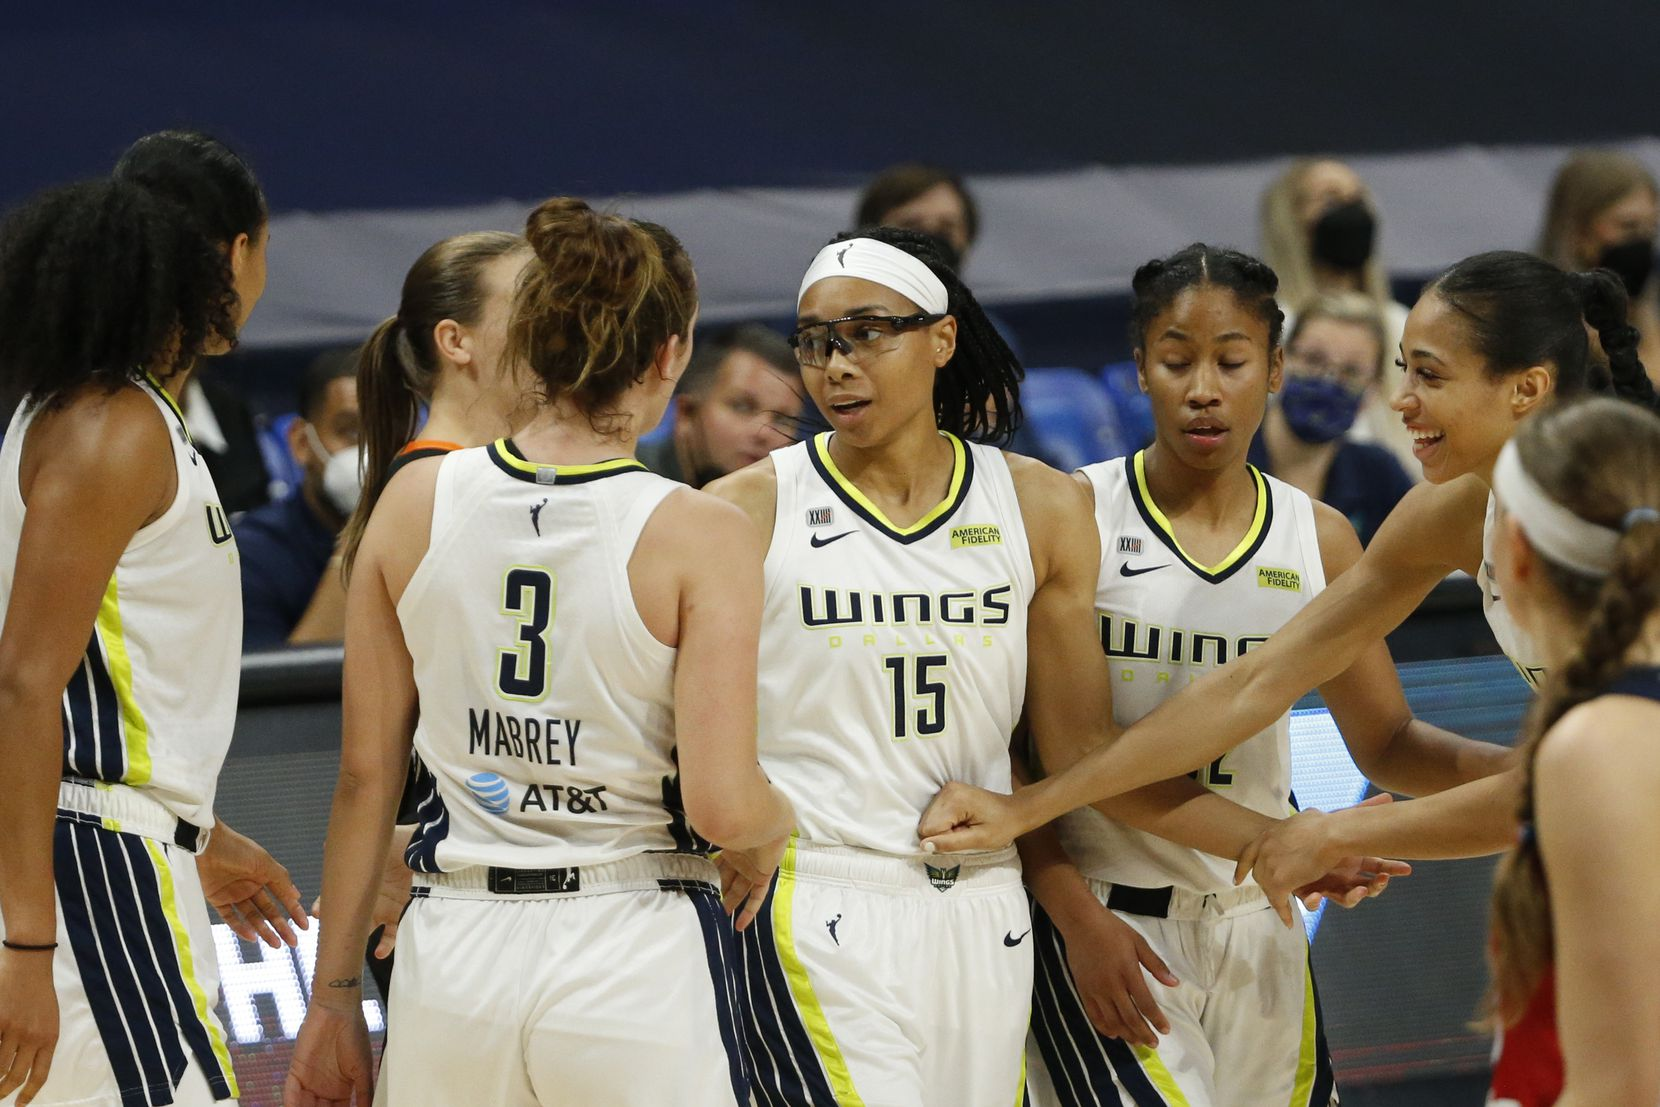 Teammates celebrate Dallas Wings guard Allisha Gray (15) after a made basket and called foul during the third quarter against the Washington Mystics at College Park Center on Saturday, June 26, 2021, in Arlington. (Elias Valverde II/The Dallas Morning News)